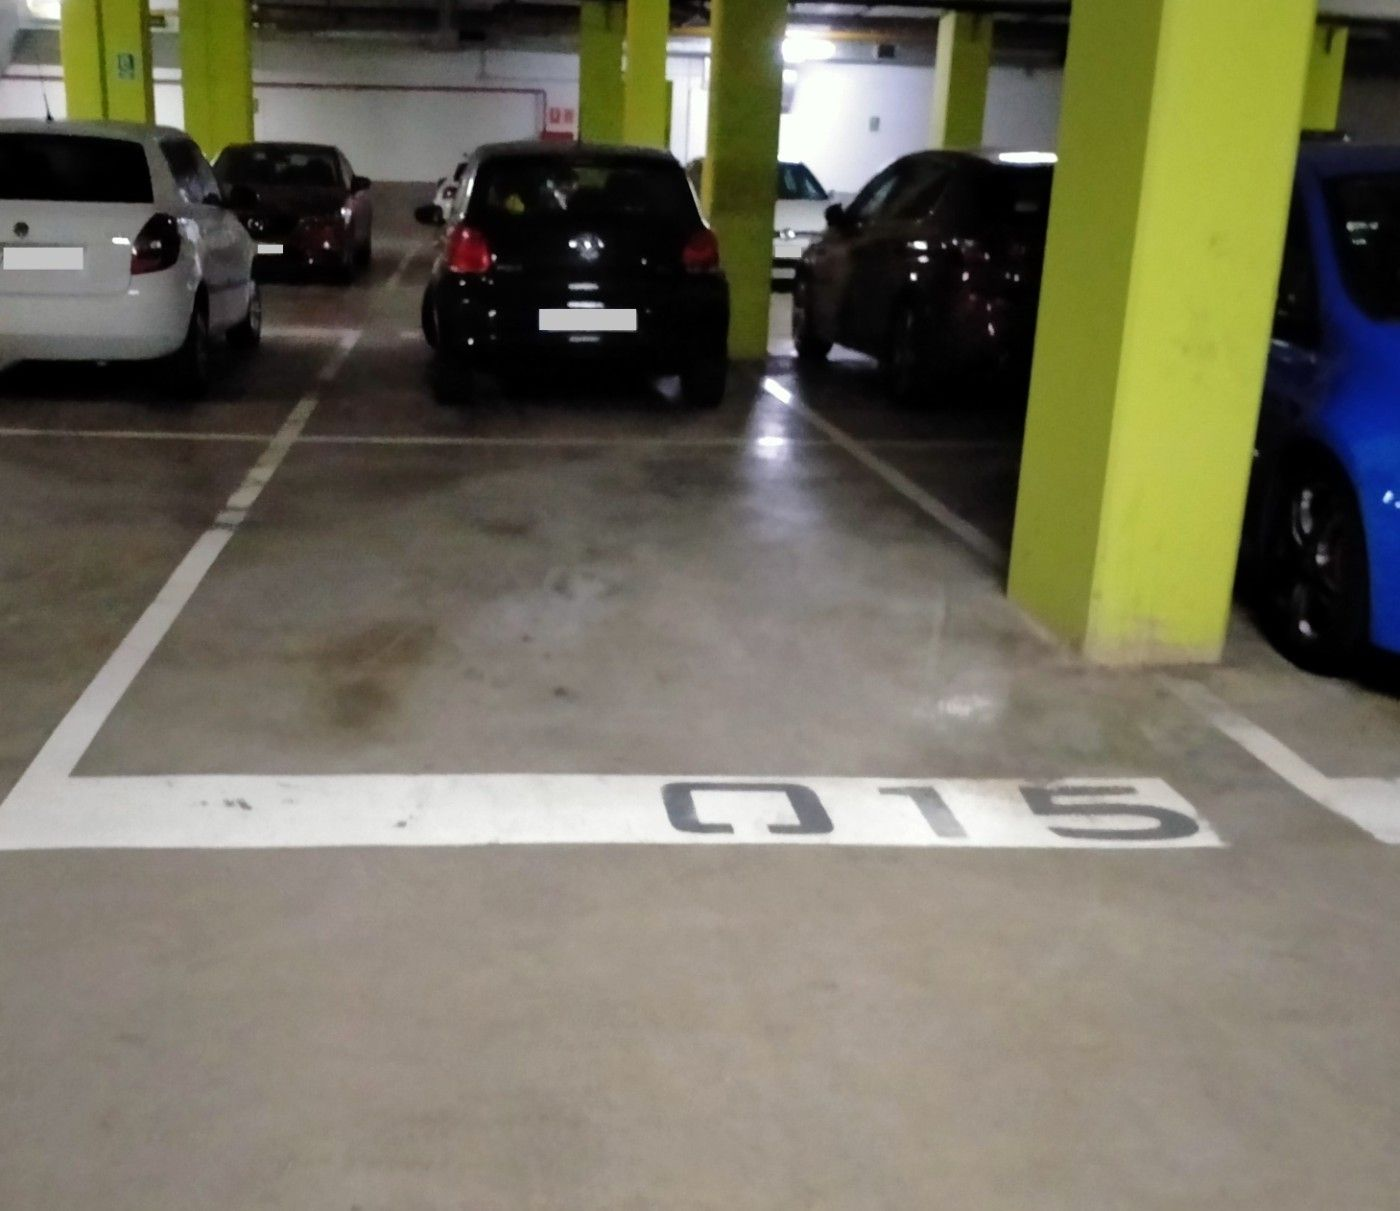 Location Parking voiture à Avinguda segle xxi, 12